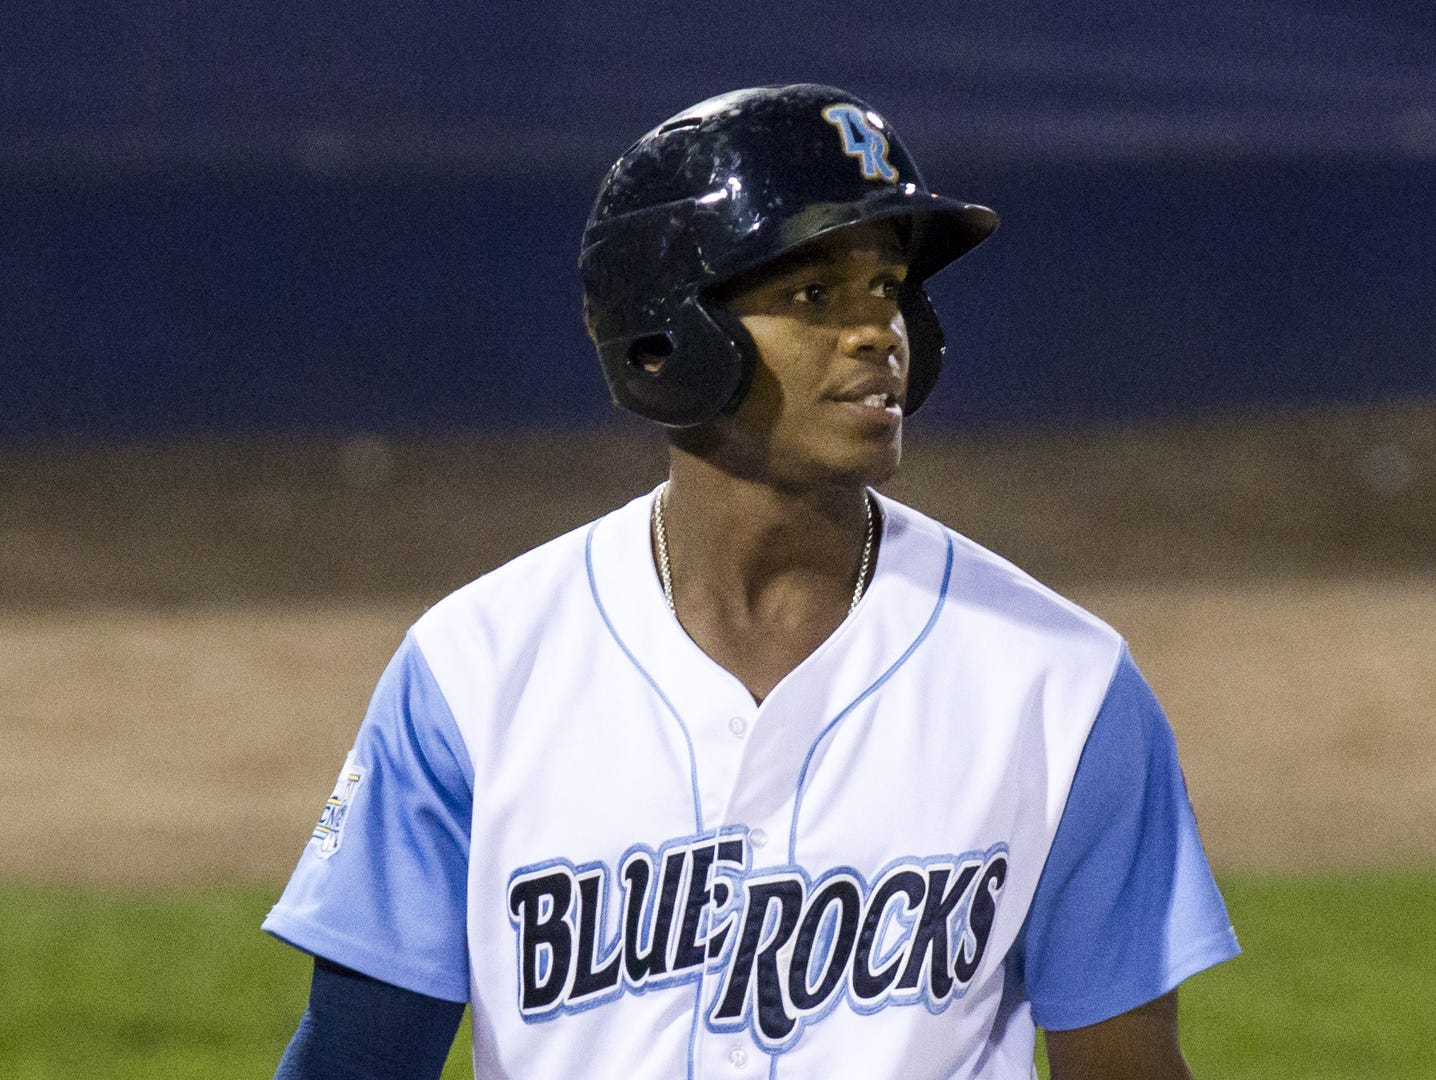 Elier Henandez and the Blue Rocks are 0-2 to start the season.